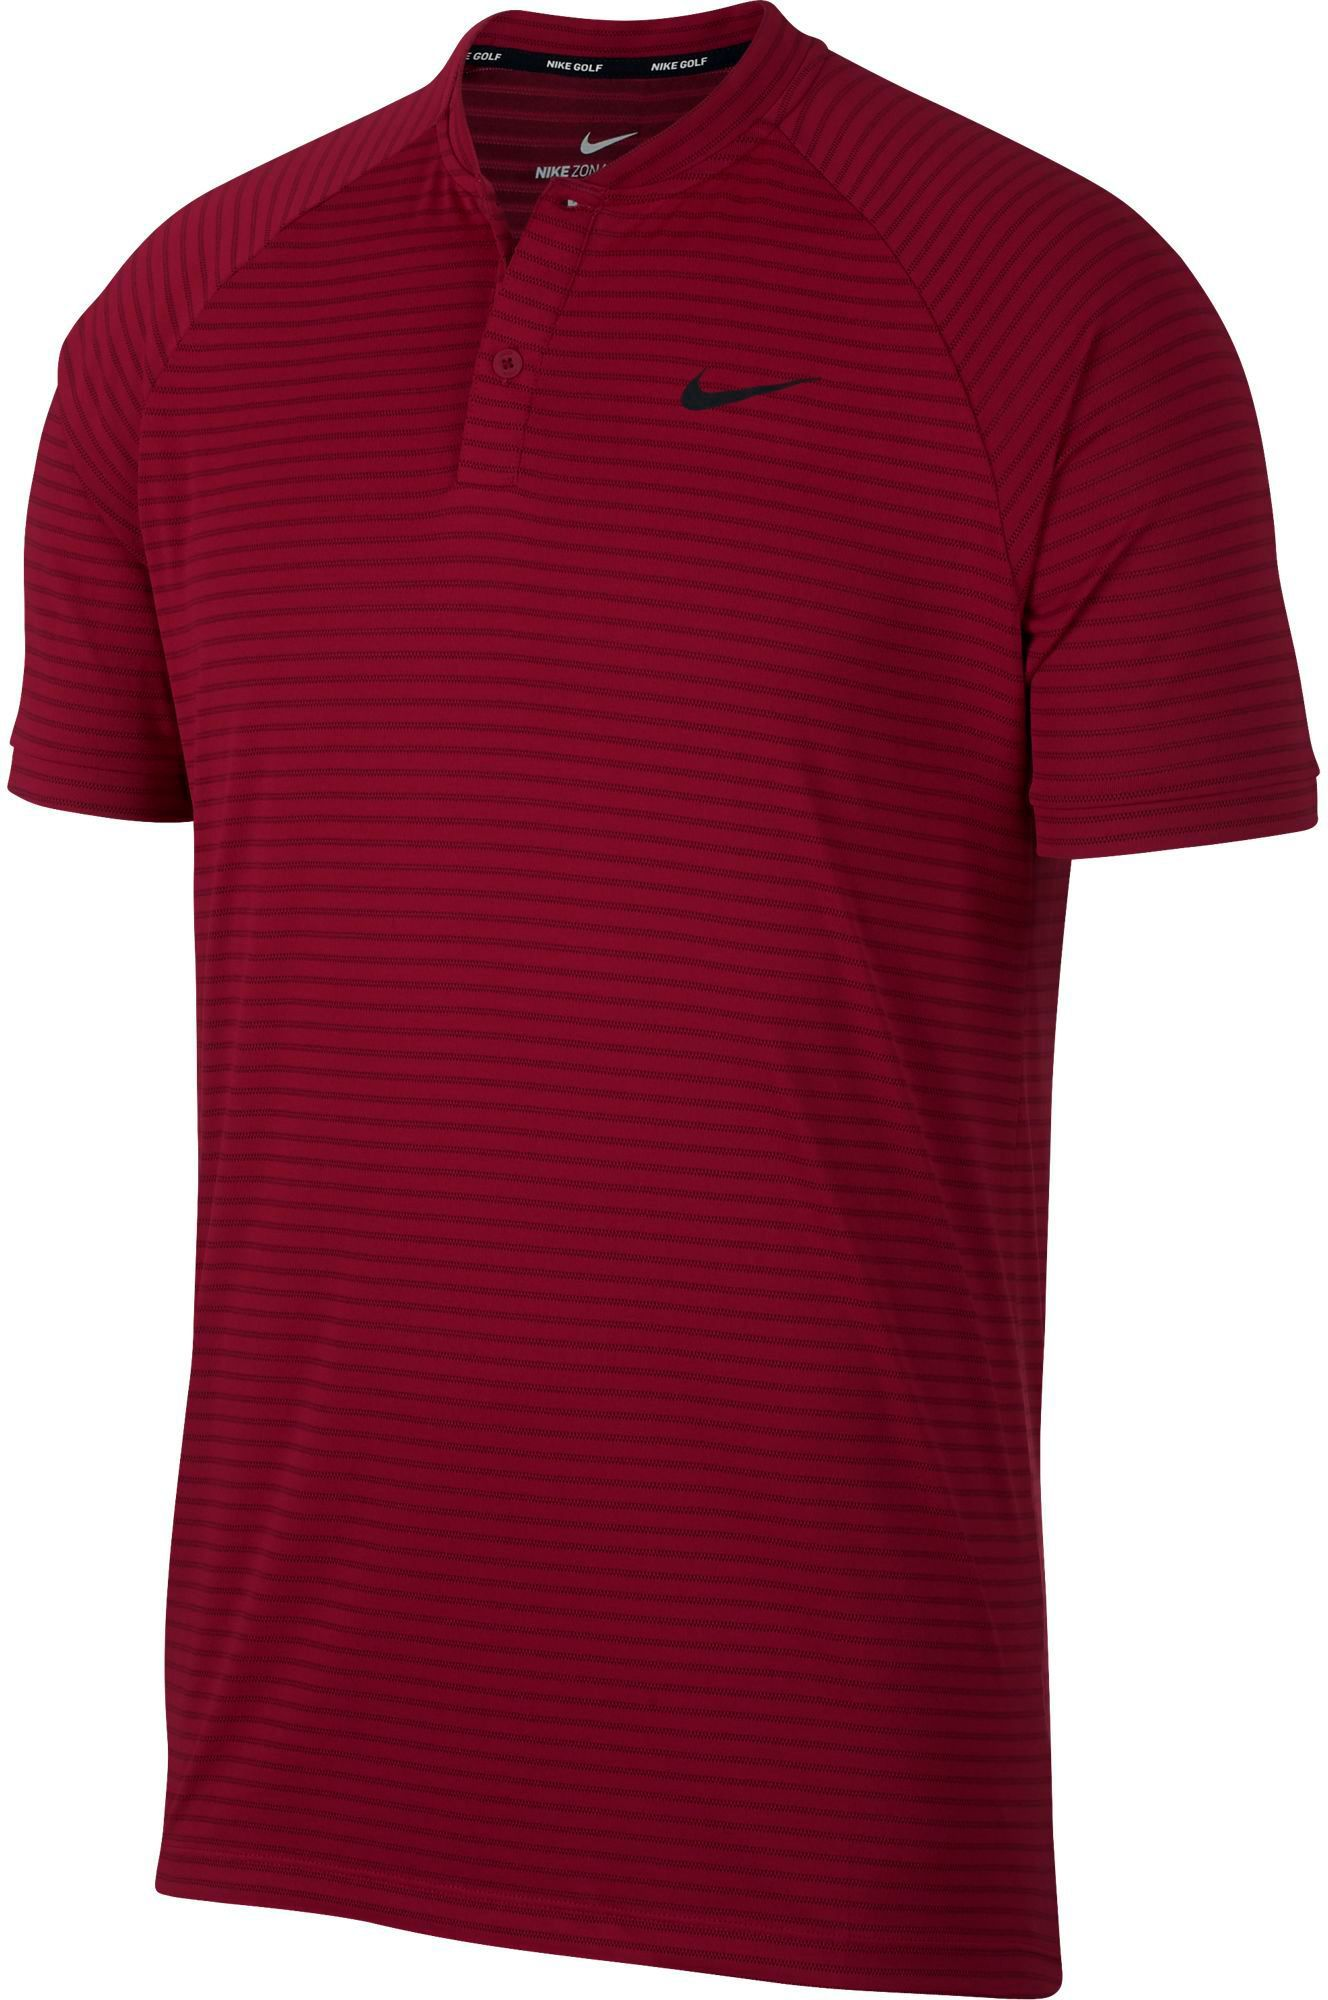 16a7f22c Nike Men's Tiger Woods Thin Stripe Zonal Cooling Golf Polo, Size ...